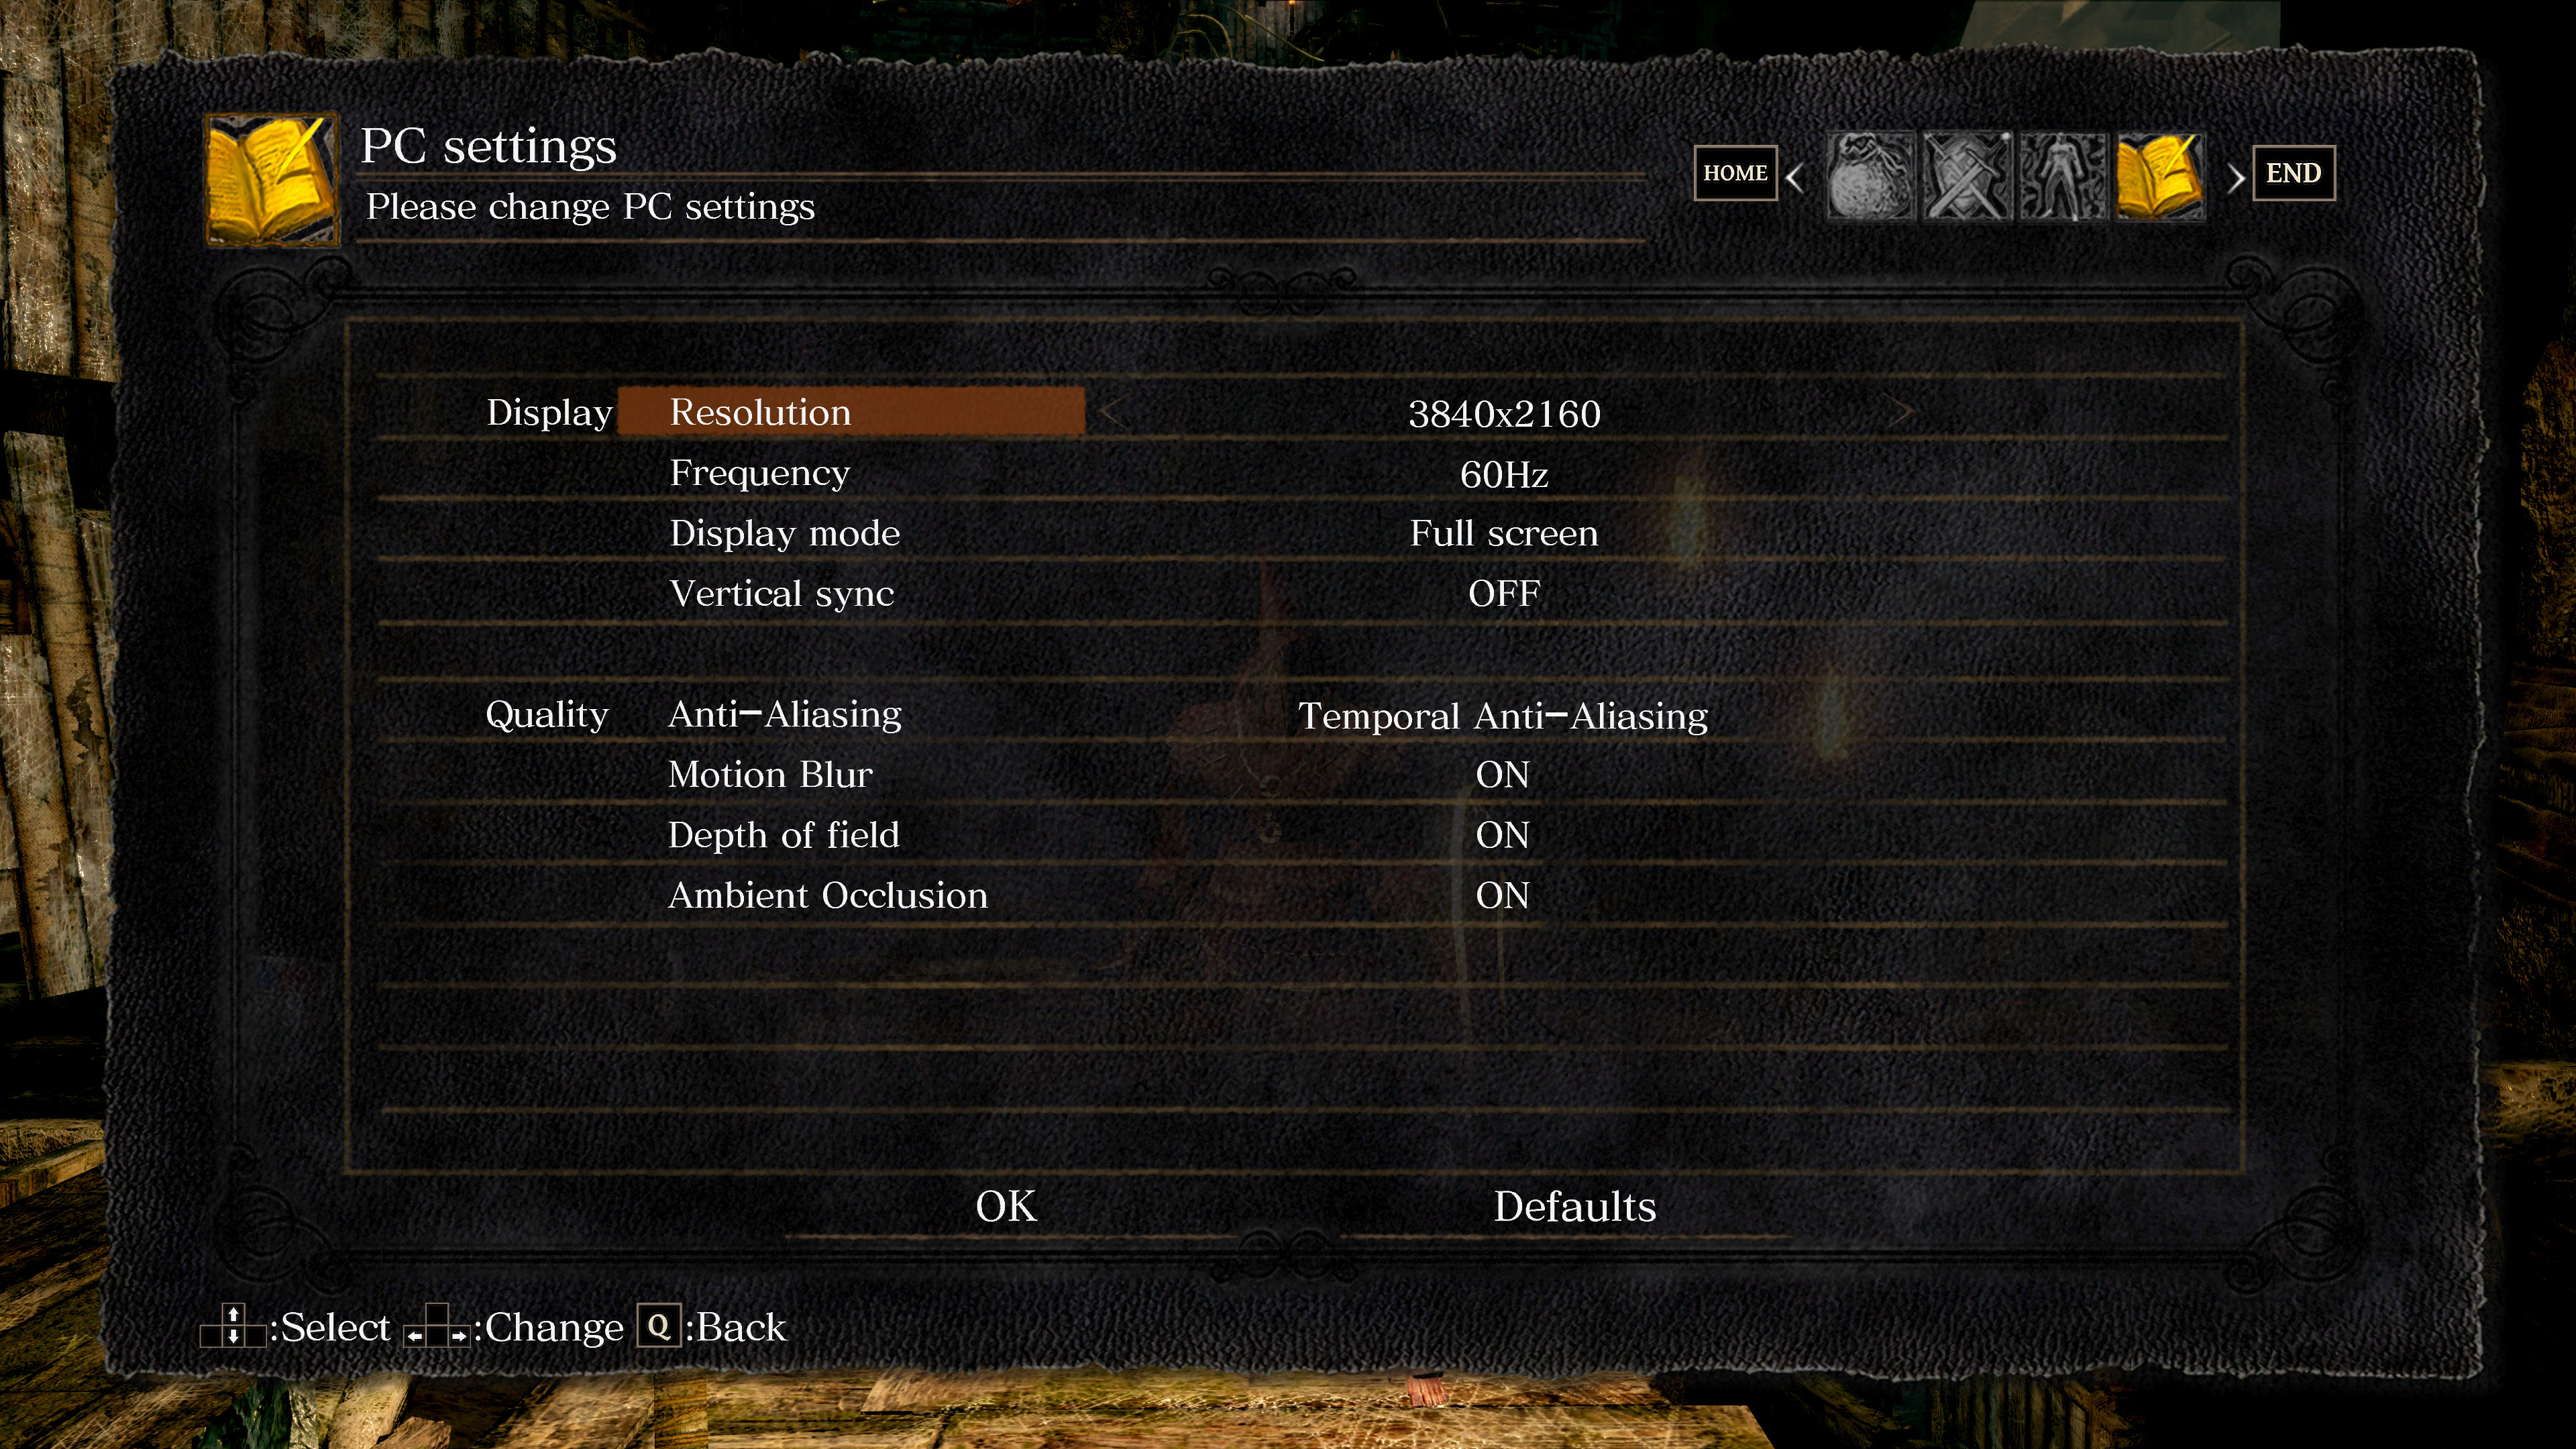 Dark Souls Remastered PC requirements: 60 fps on any hardware | PC Gamer